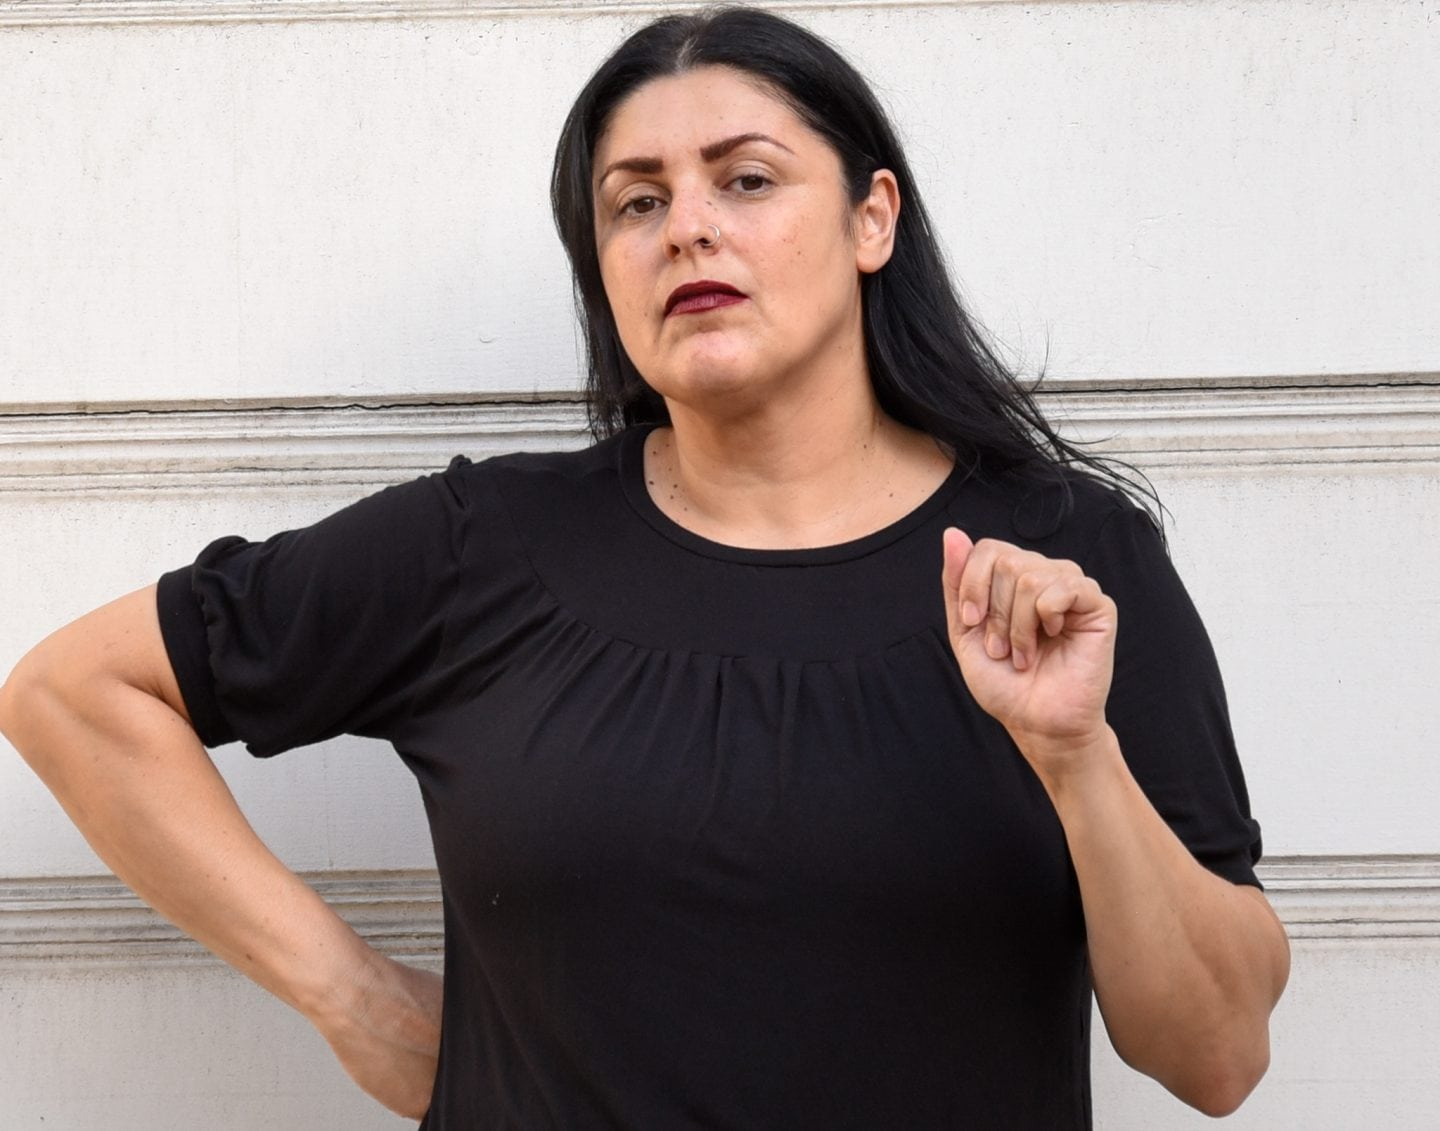 Image of a woman wearing a black T-shirt with gathering below the neck